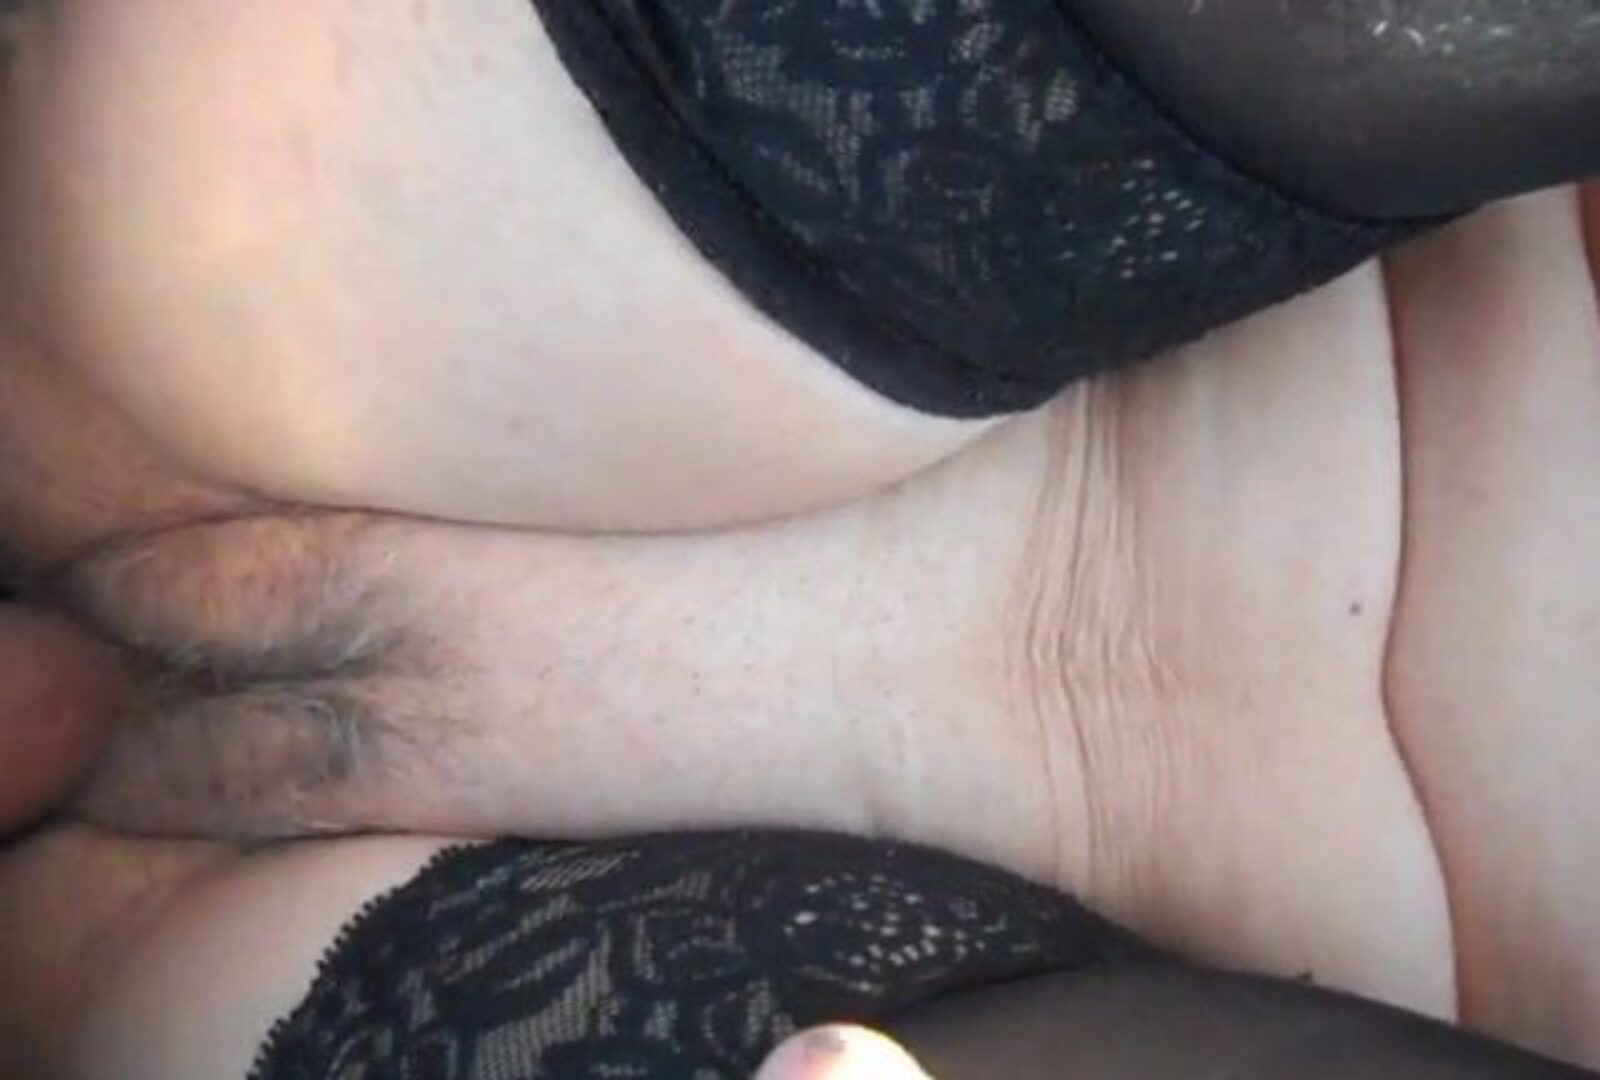 plumb and jizm in sunlight banging and massaging dick head on clitoris and then wife widens her hirsute twat for all to watch and jizm She woke up sexually excited